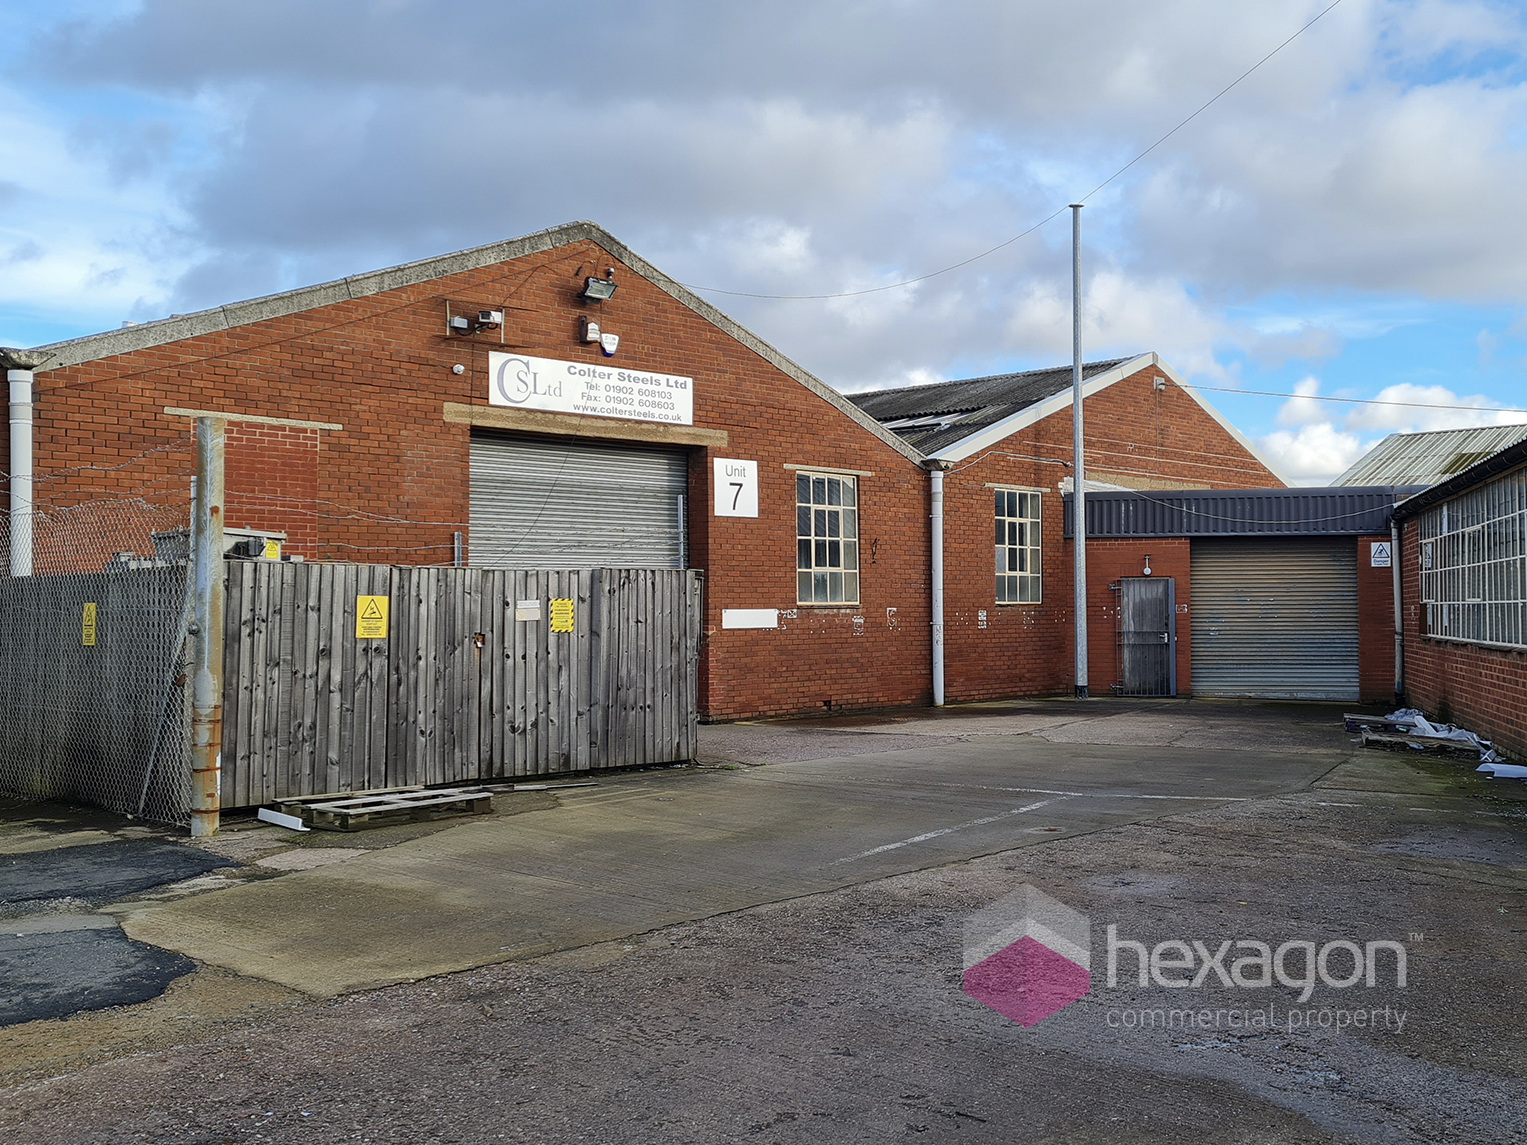 0 bed Light Industrial for rent in Willenhall. From Hexagon Commercial Property